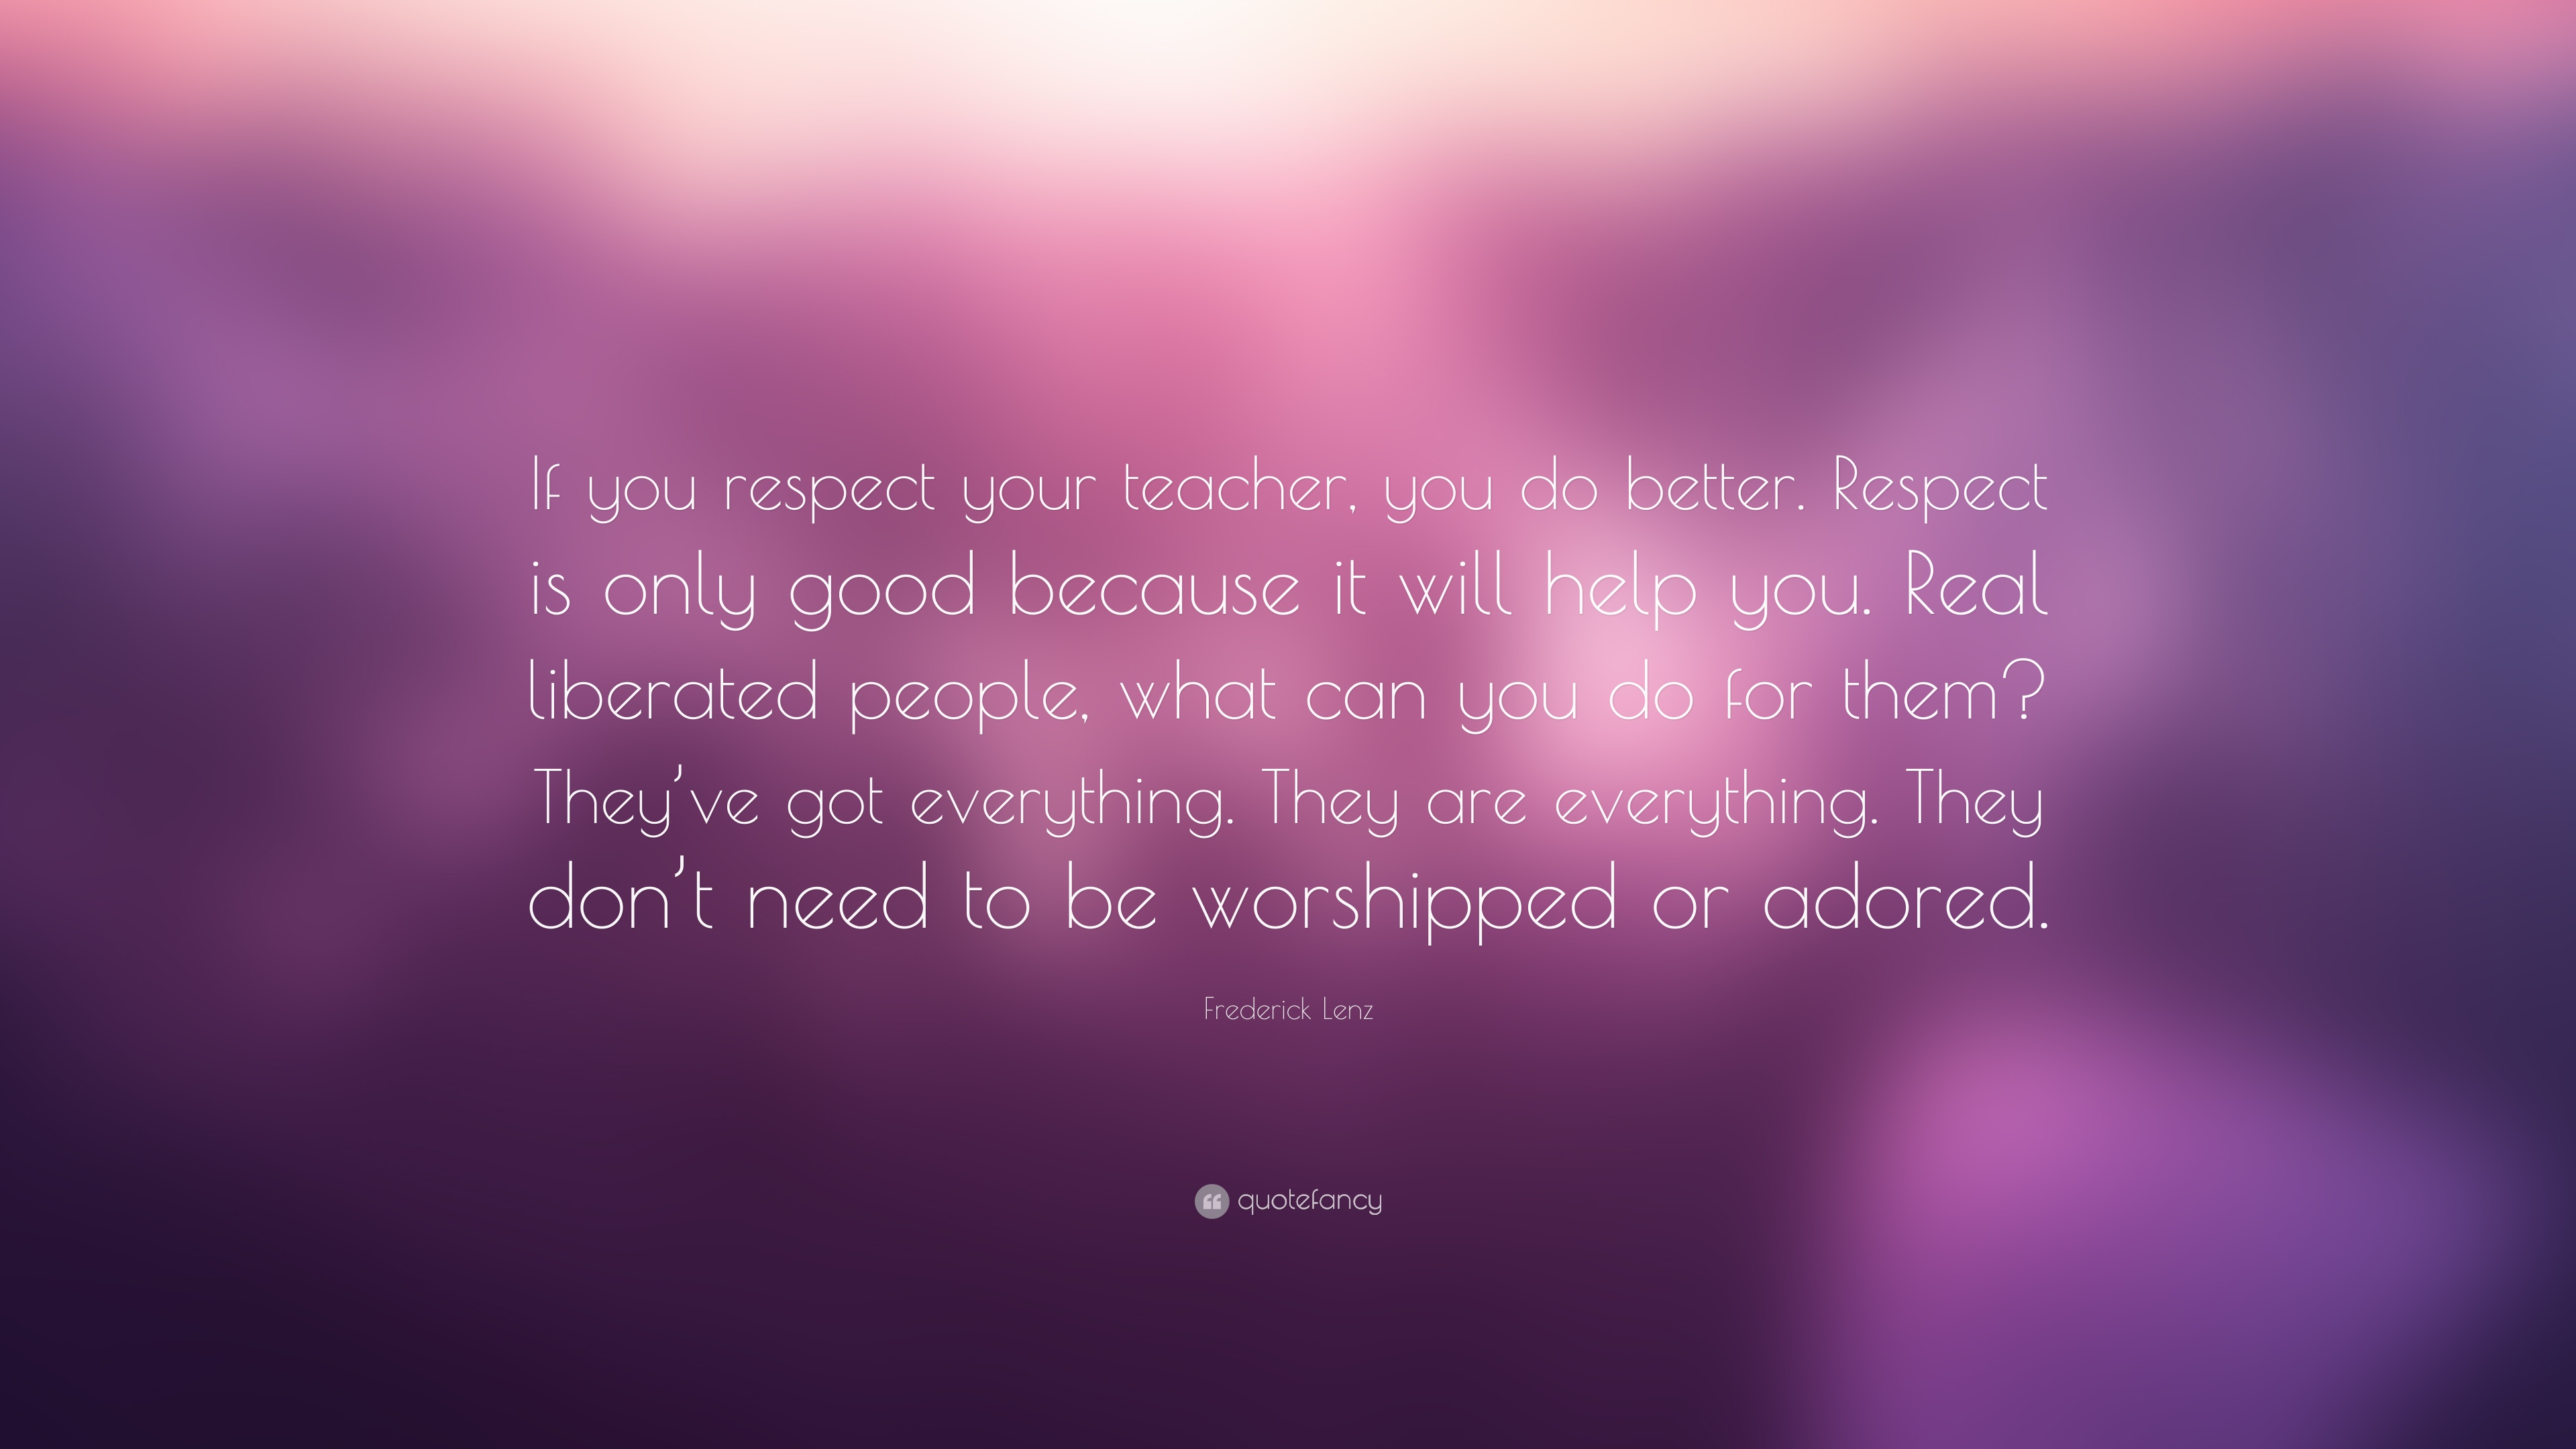 Respect Your Teachers Quotes Twitter thumbnail